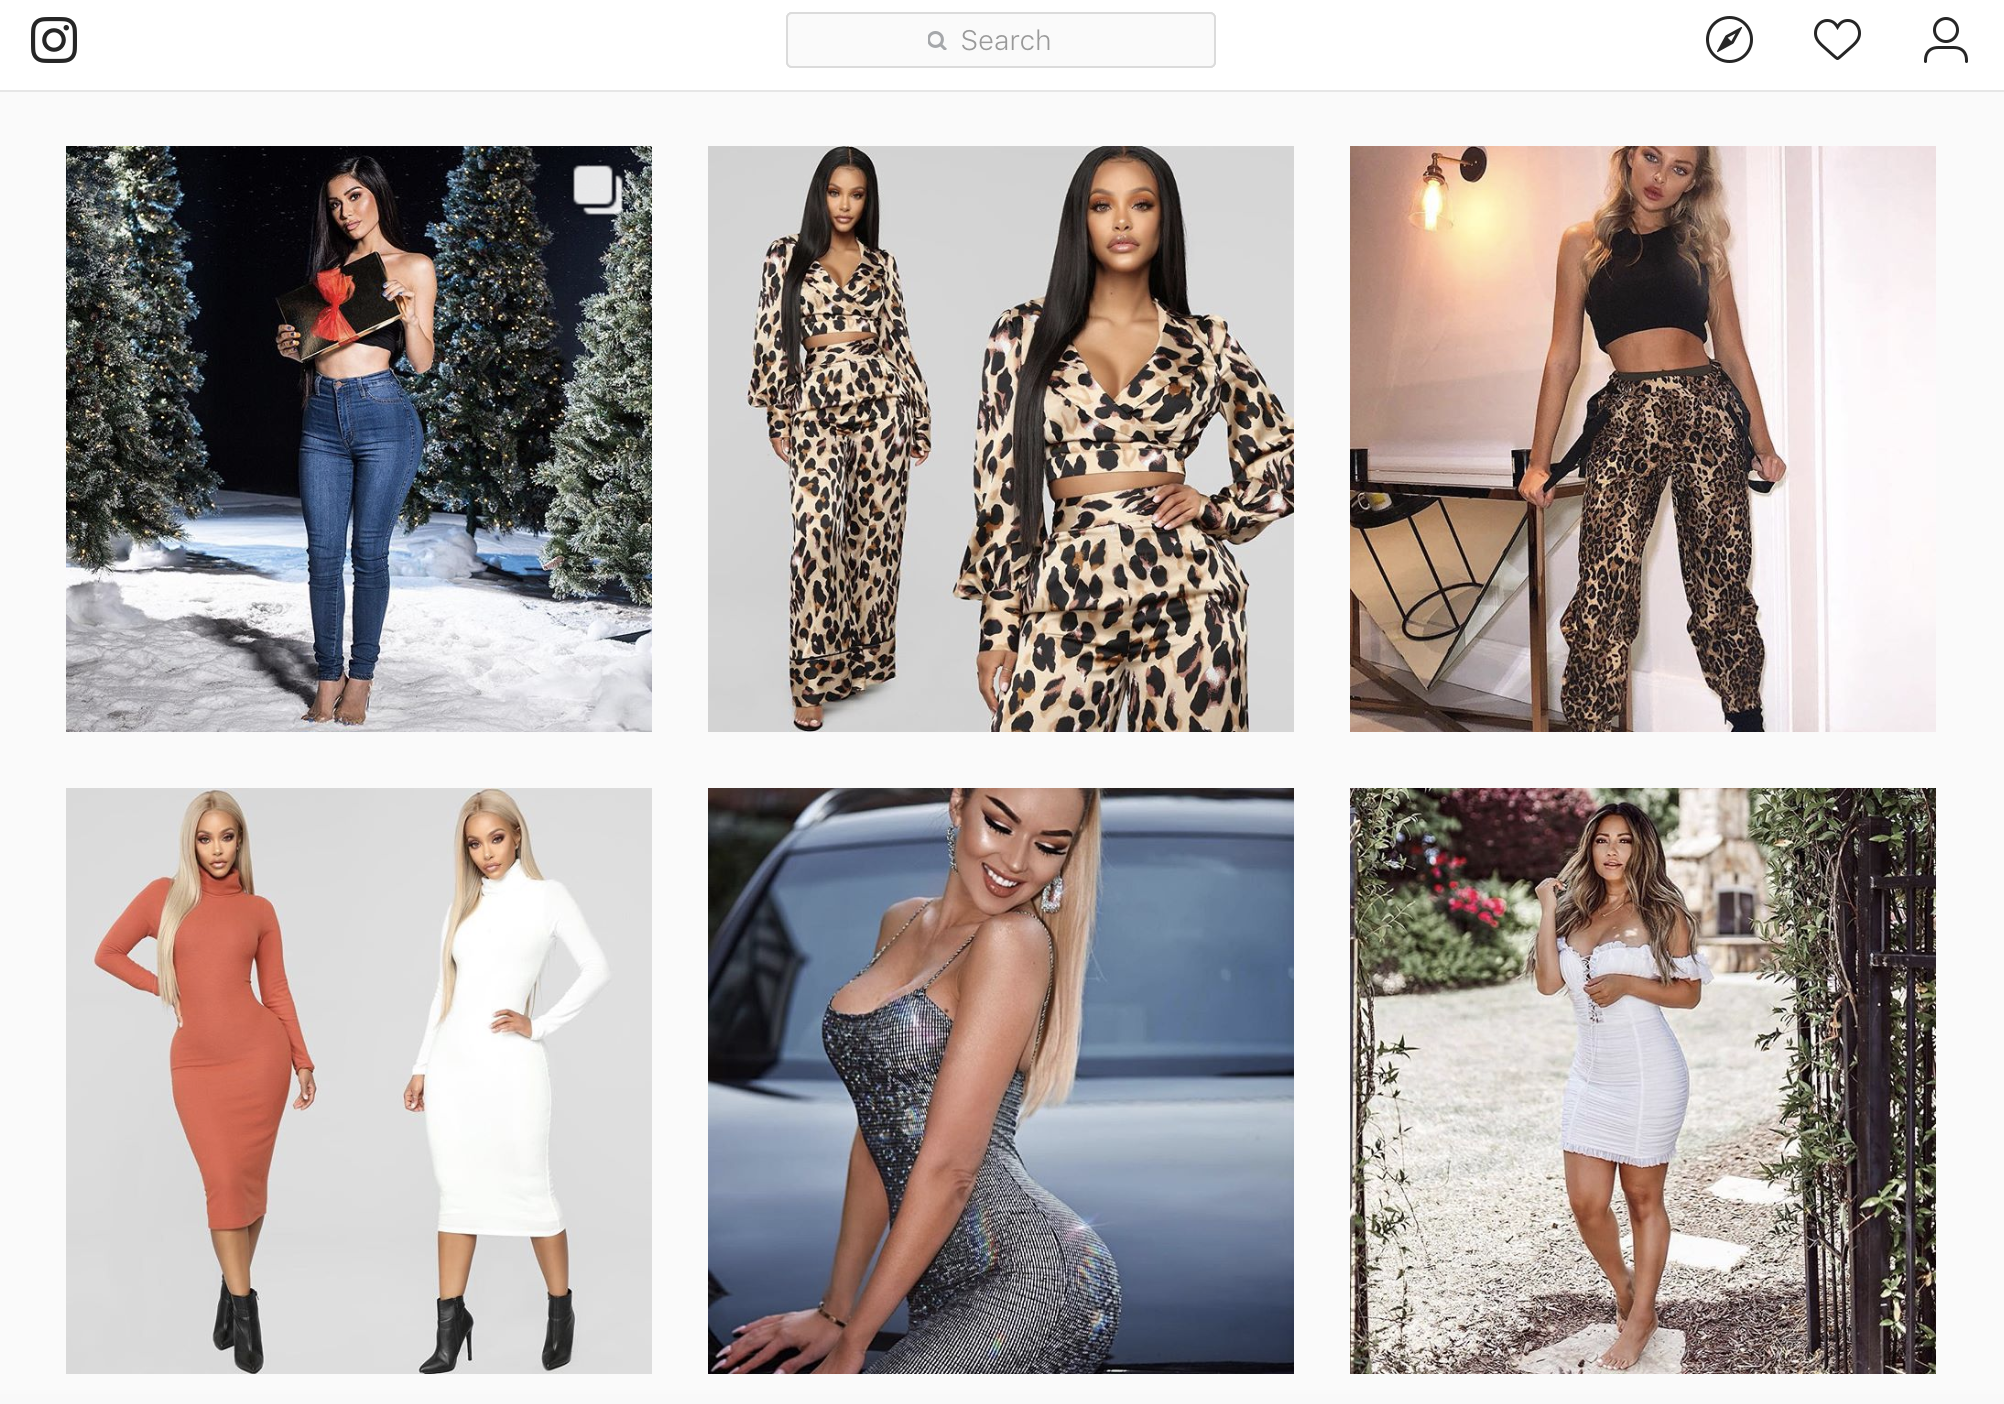 263396e27ae The Top Searched Fashion Brand of 2018 May Surprise You · Evie Magazine